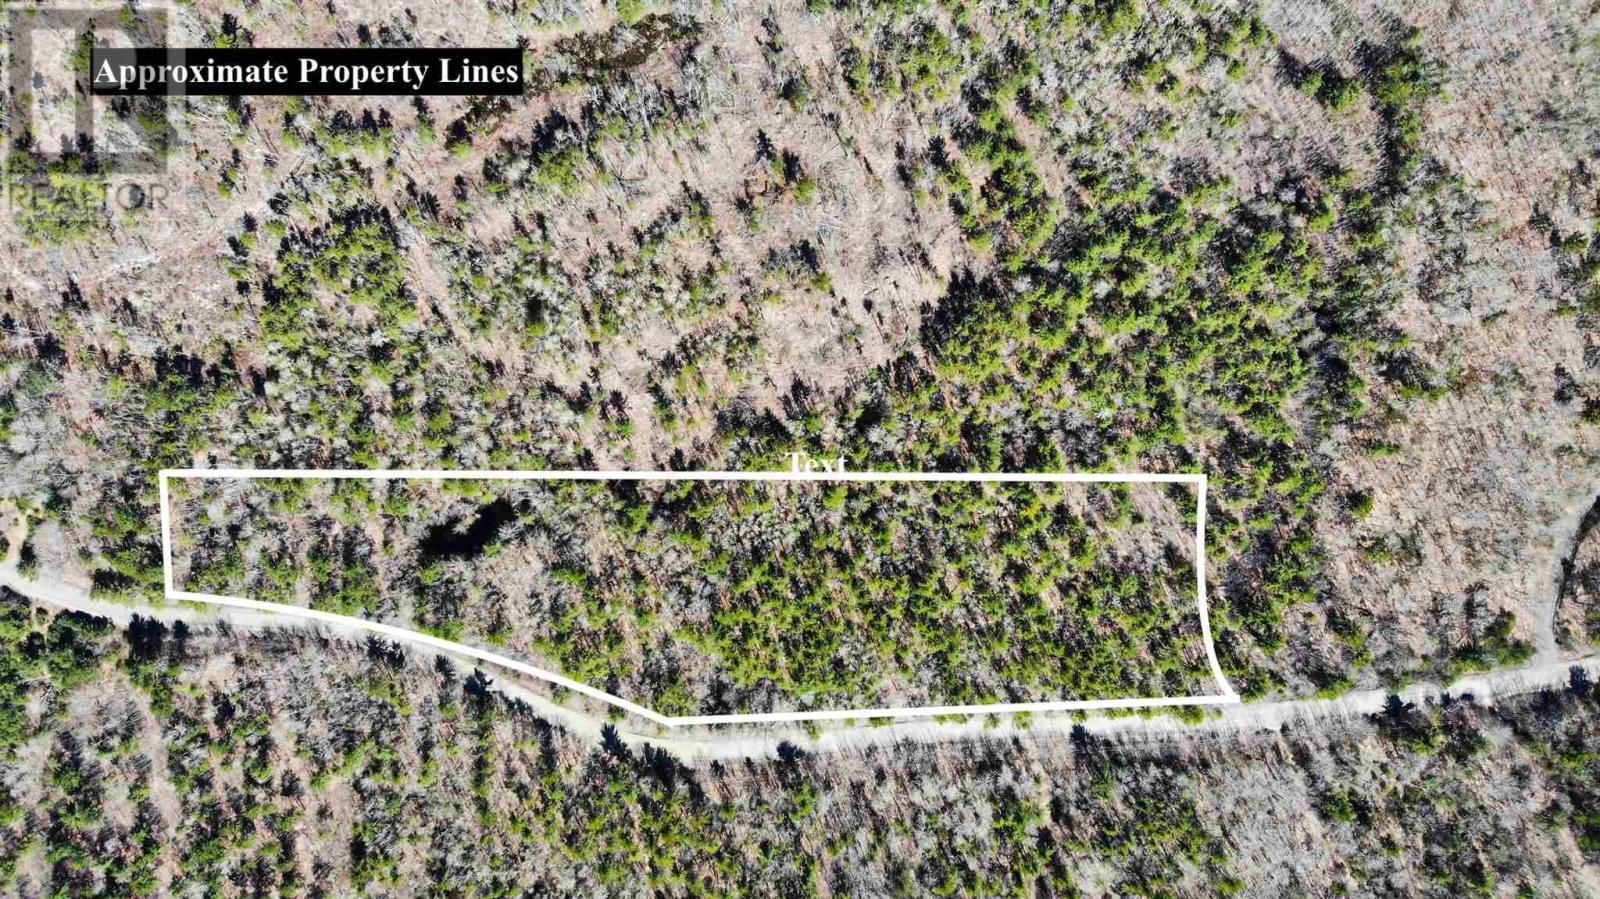 Main Photo: Lot 2 Labelle Road in Molega: Vacant Land for sale : MLS®# 202108292